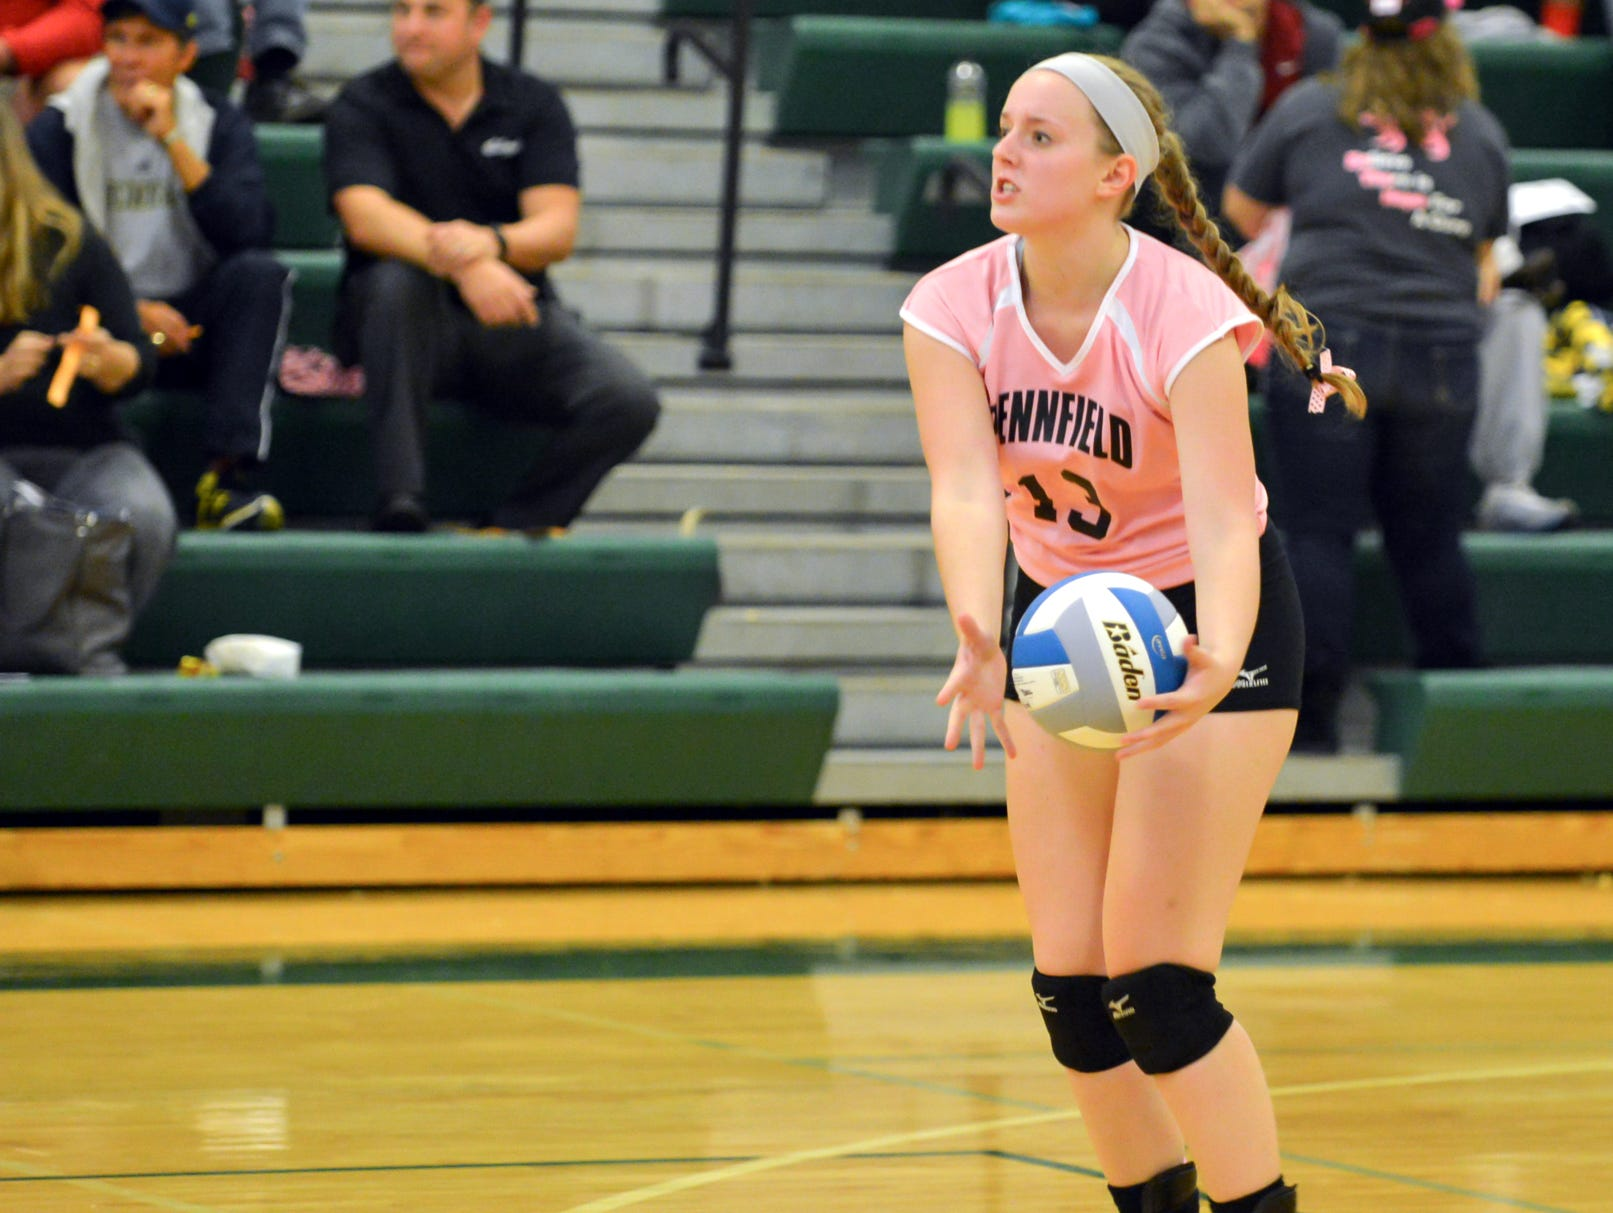 Pennfield's Kennedy Barlond prepares to serve in the second match against Northwest Wednesday night.